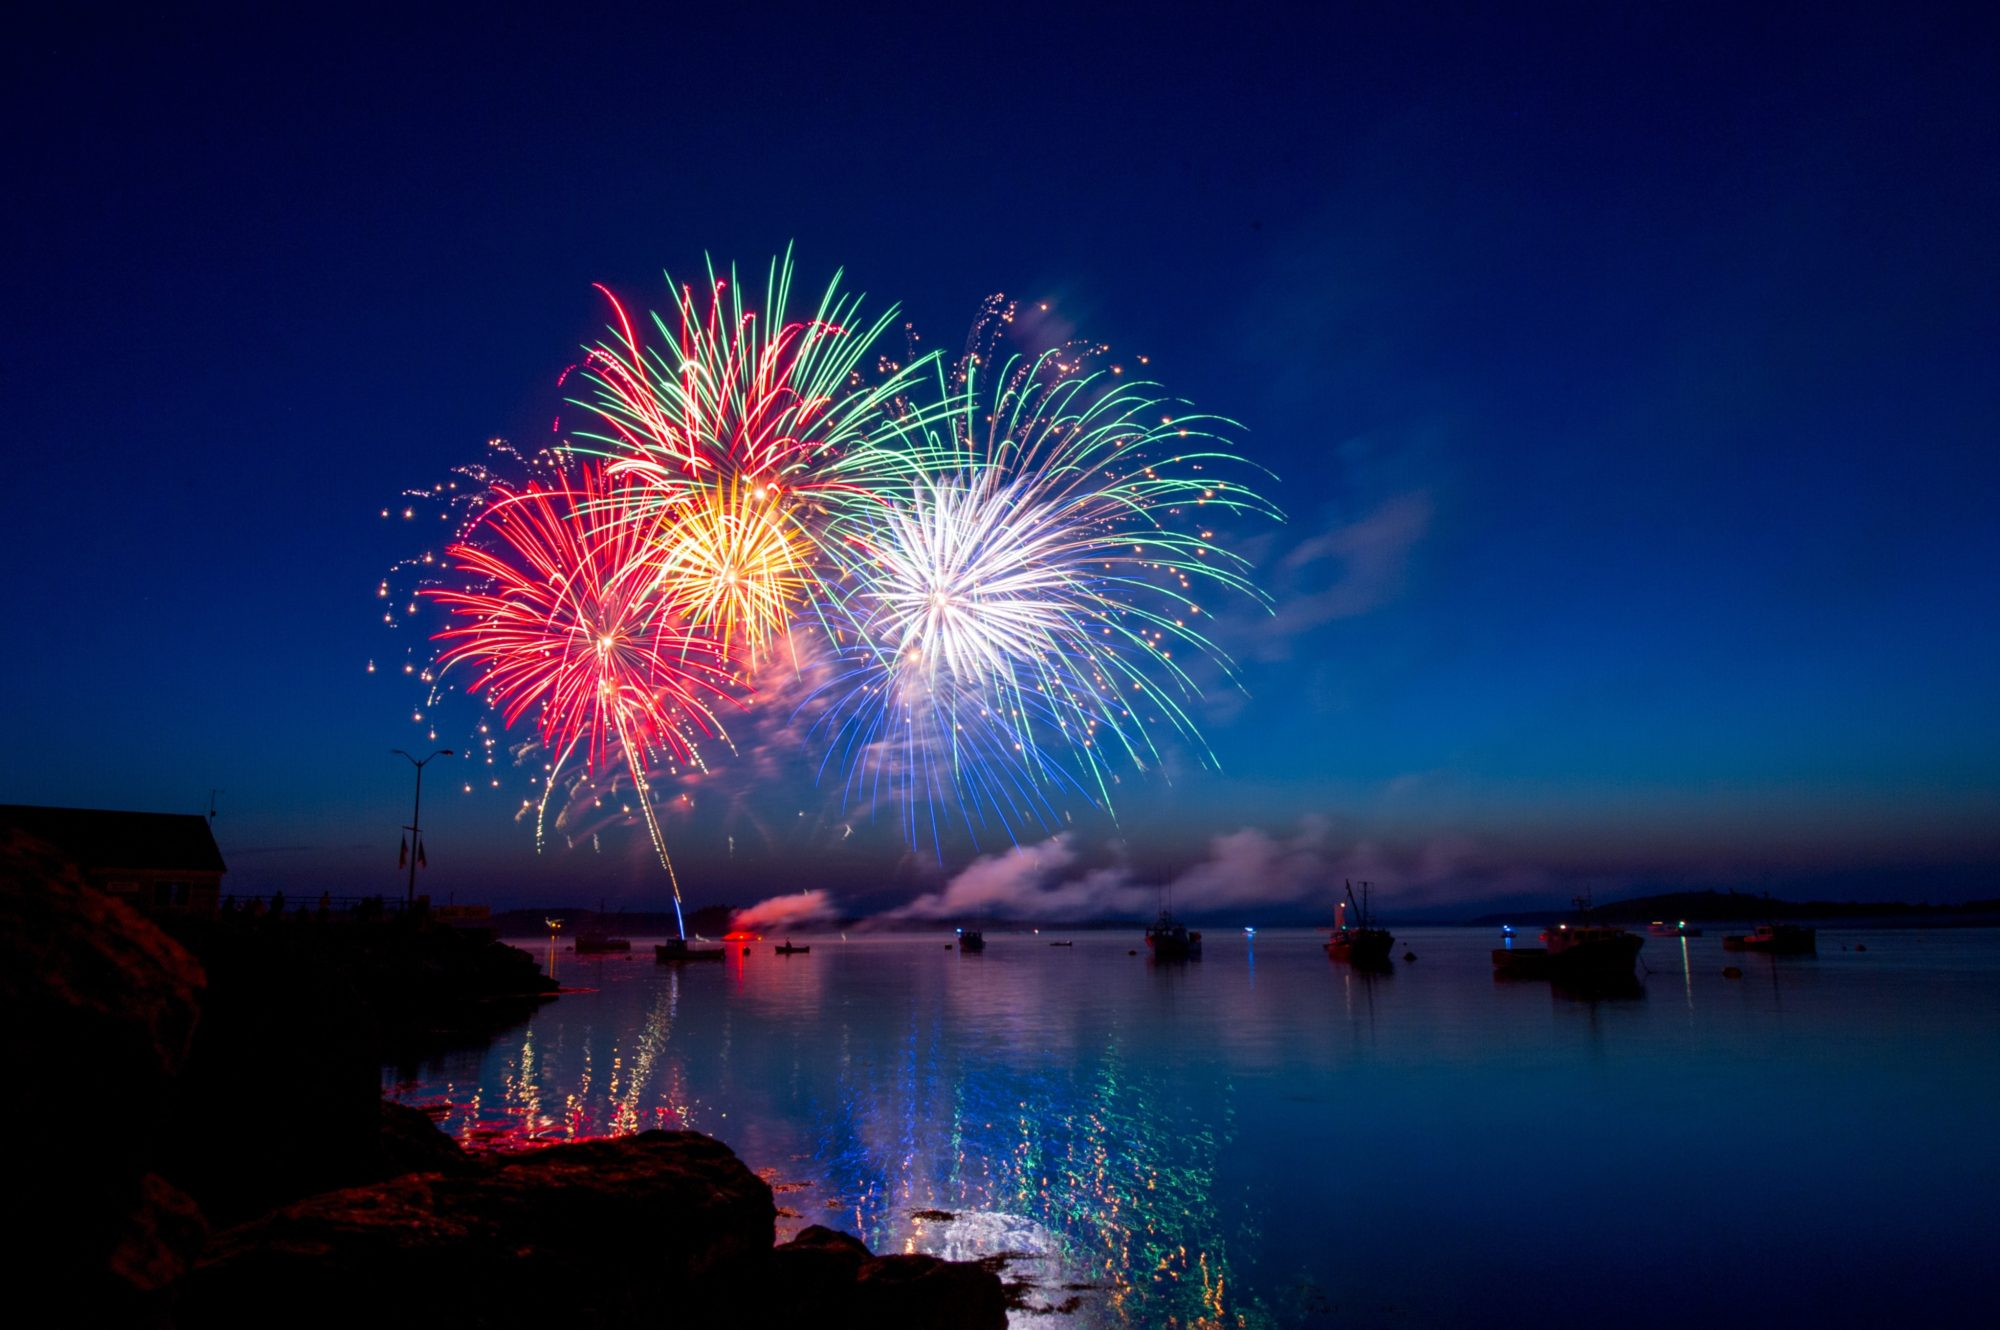 Image of Fireworks on night sky viewed from a safe distance